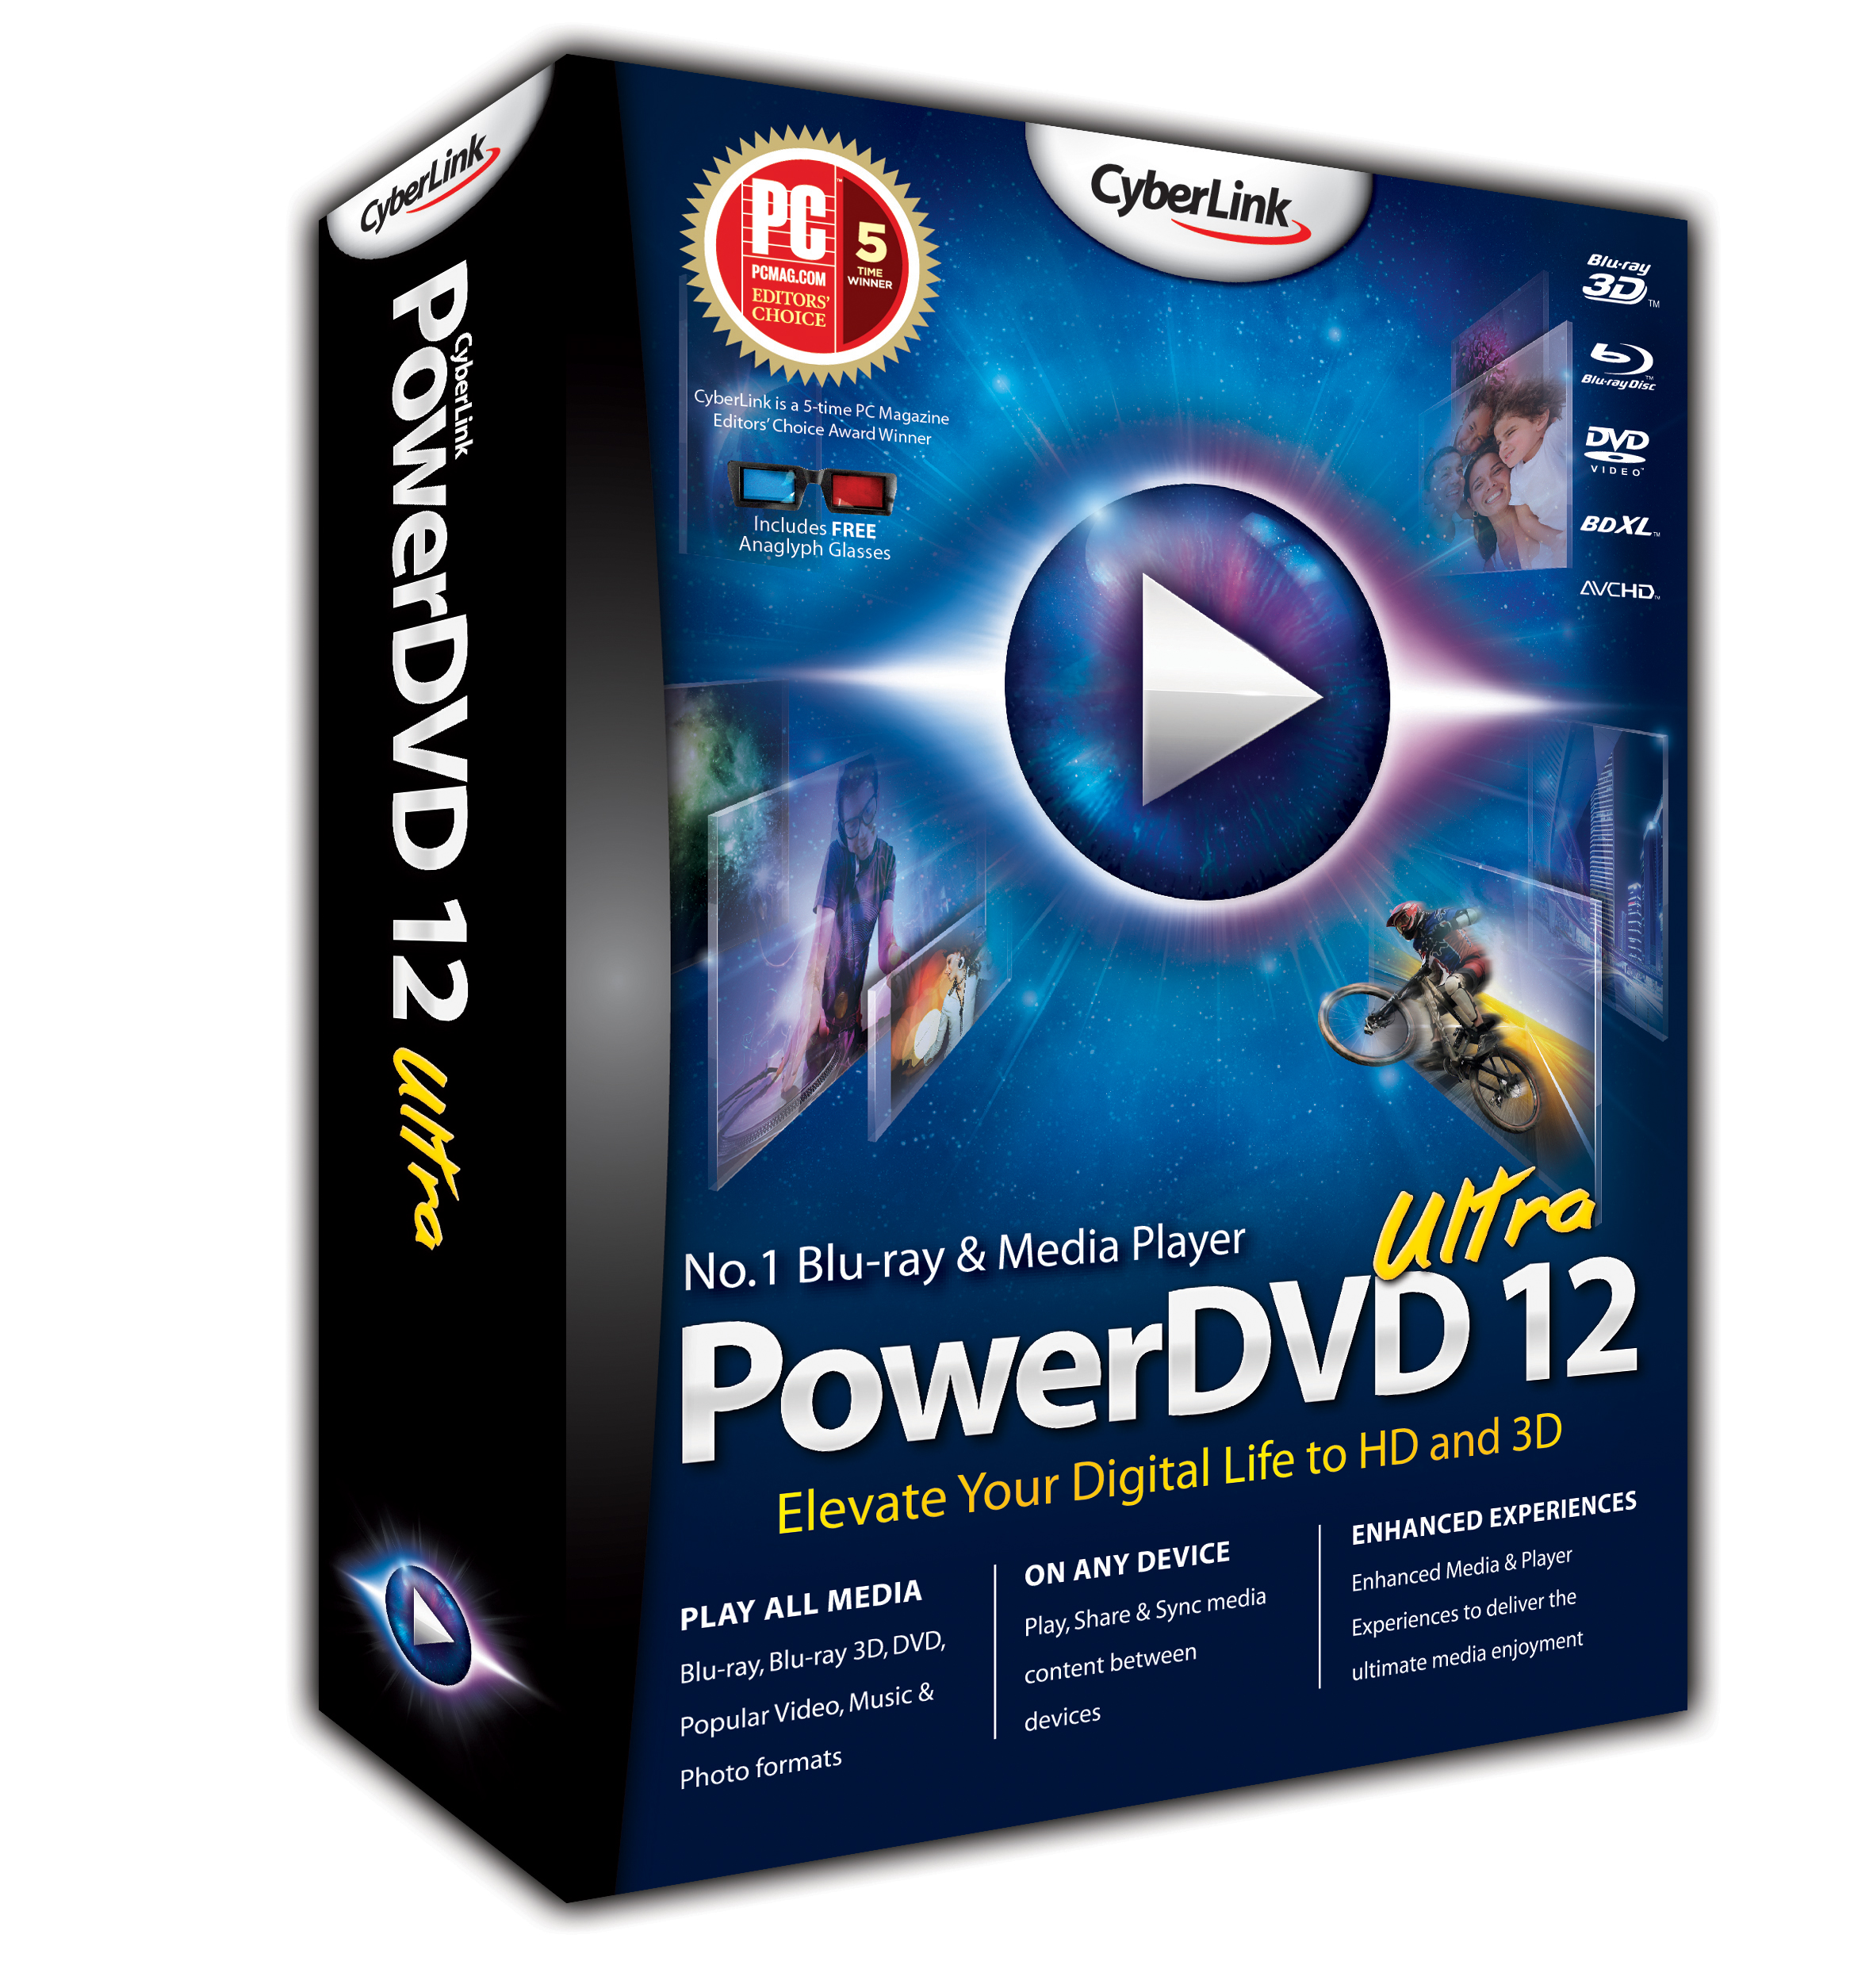 Upgrade to PowerDVD 12 Ultra from 10/11 Ultra